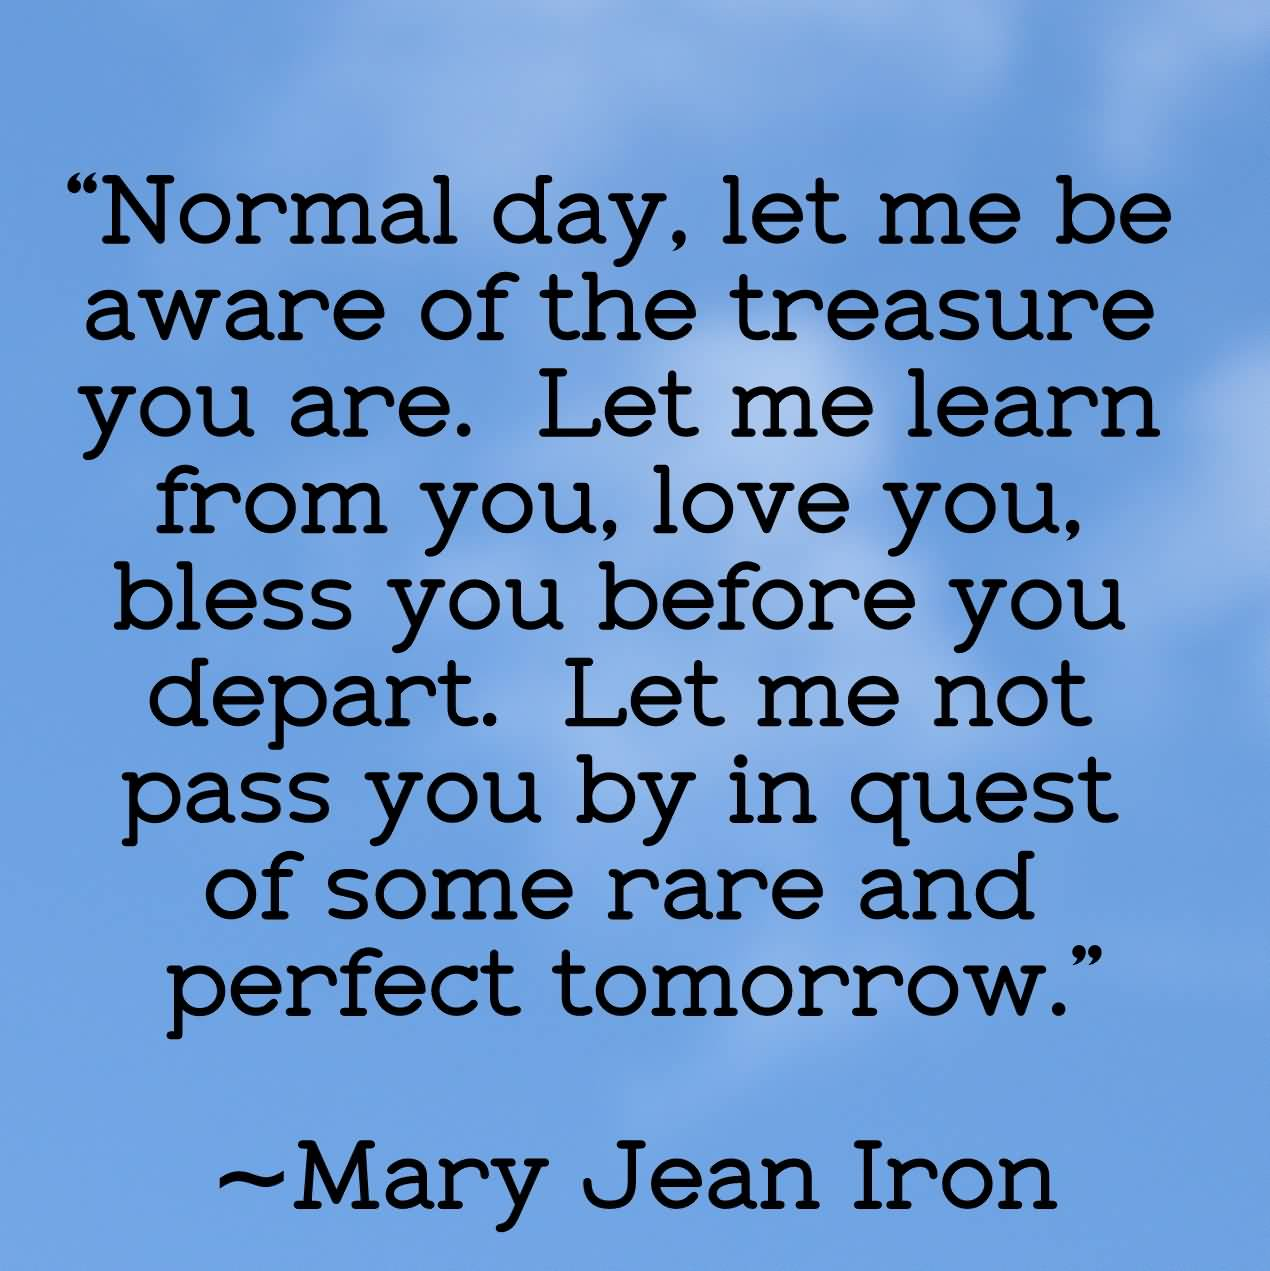 Normal day let me be aware of the treasure you are Let me learn from you love you bless you before you depart Let me not pass you by in quest of some rare Mary Jean Iron